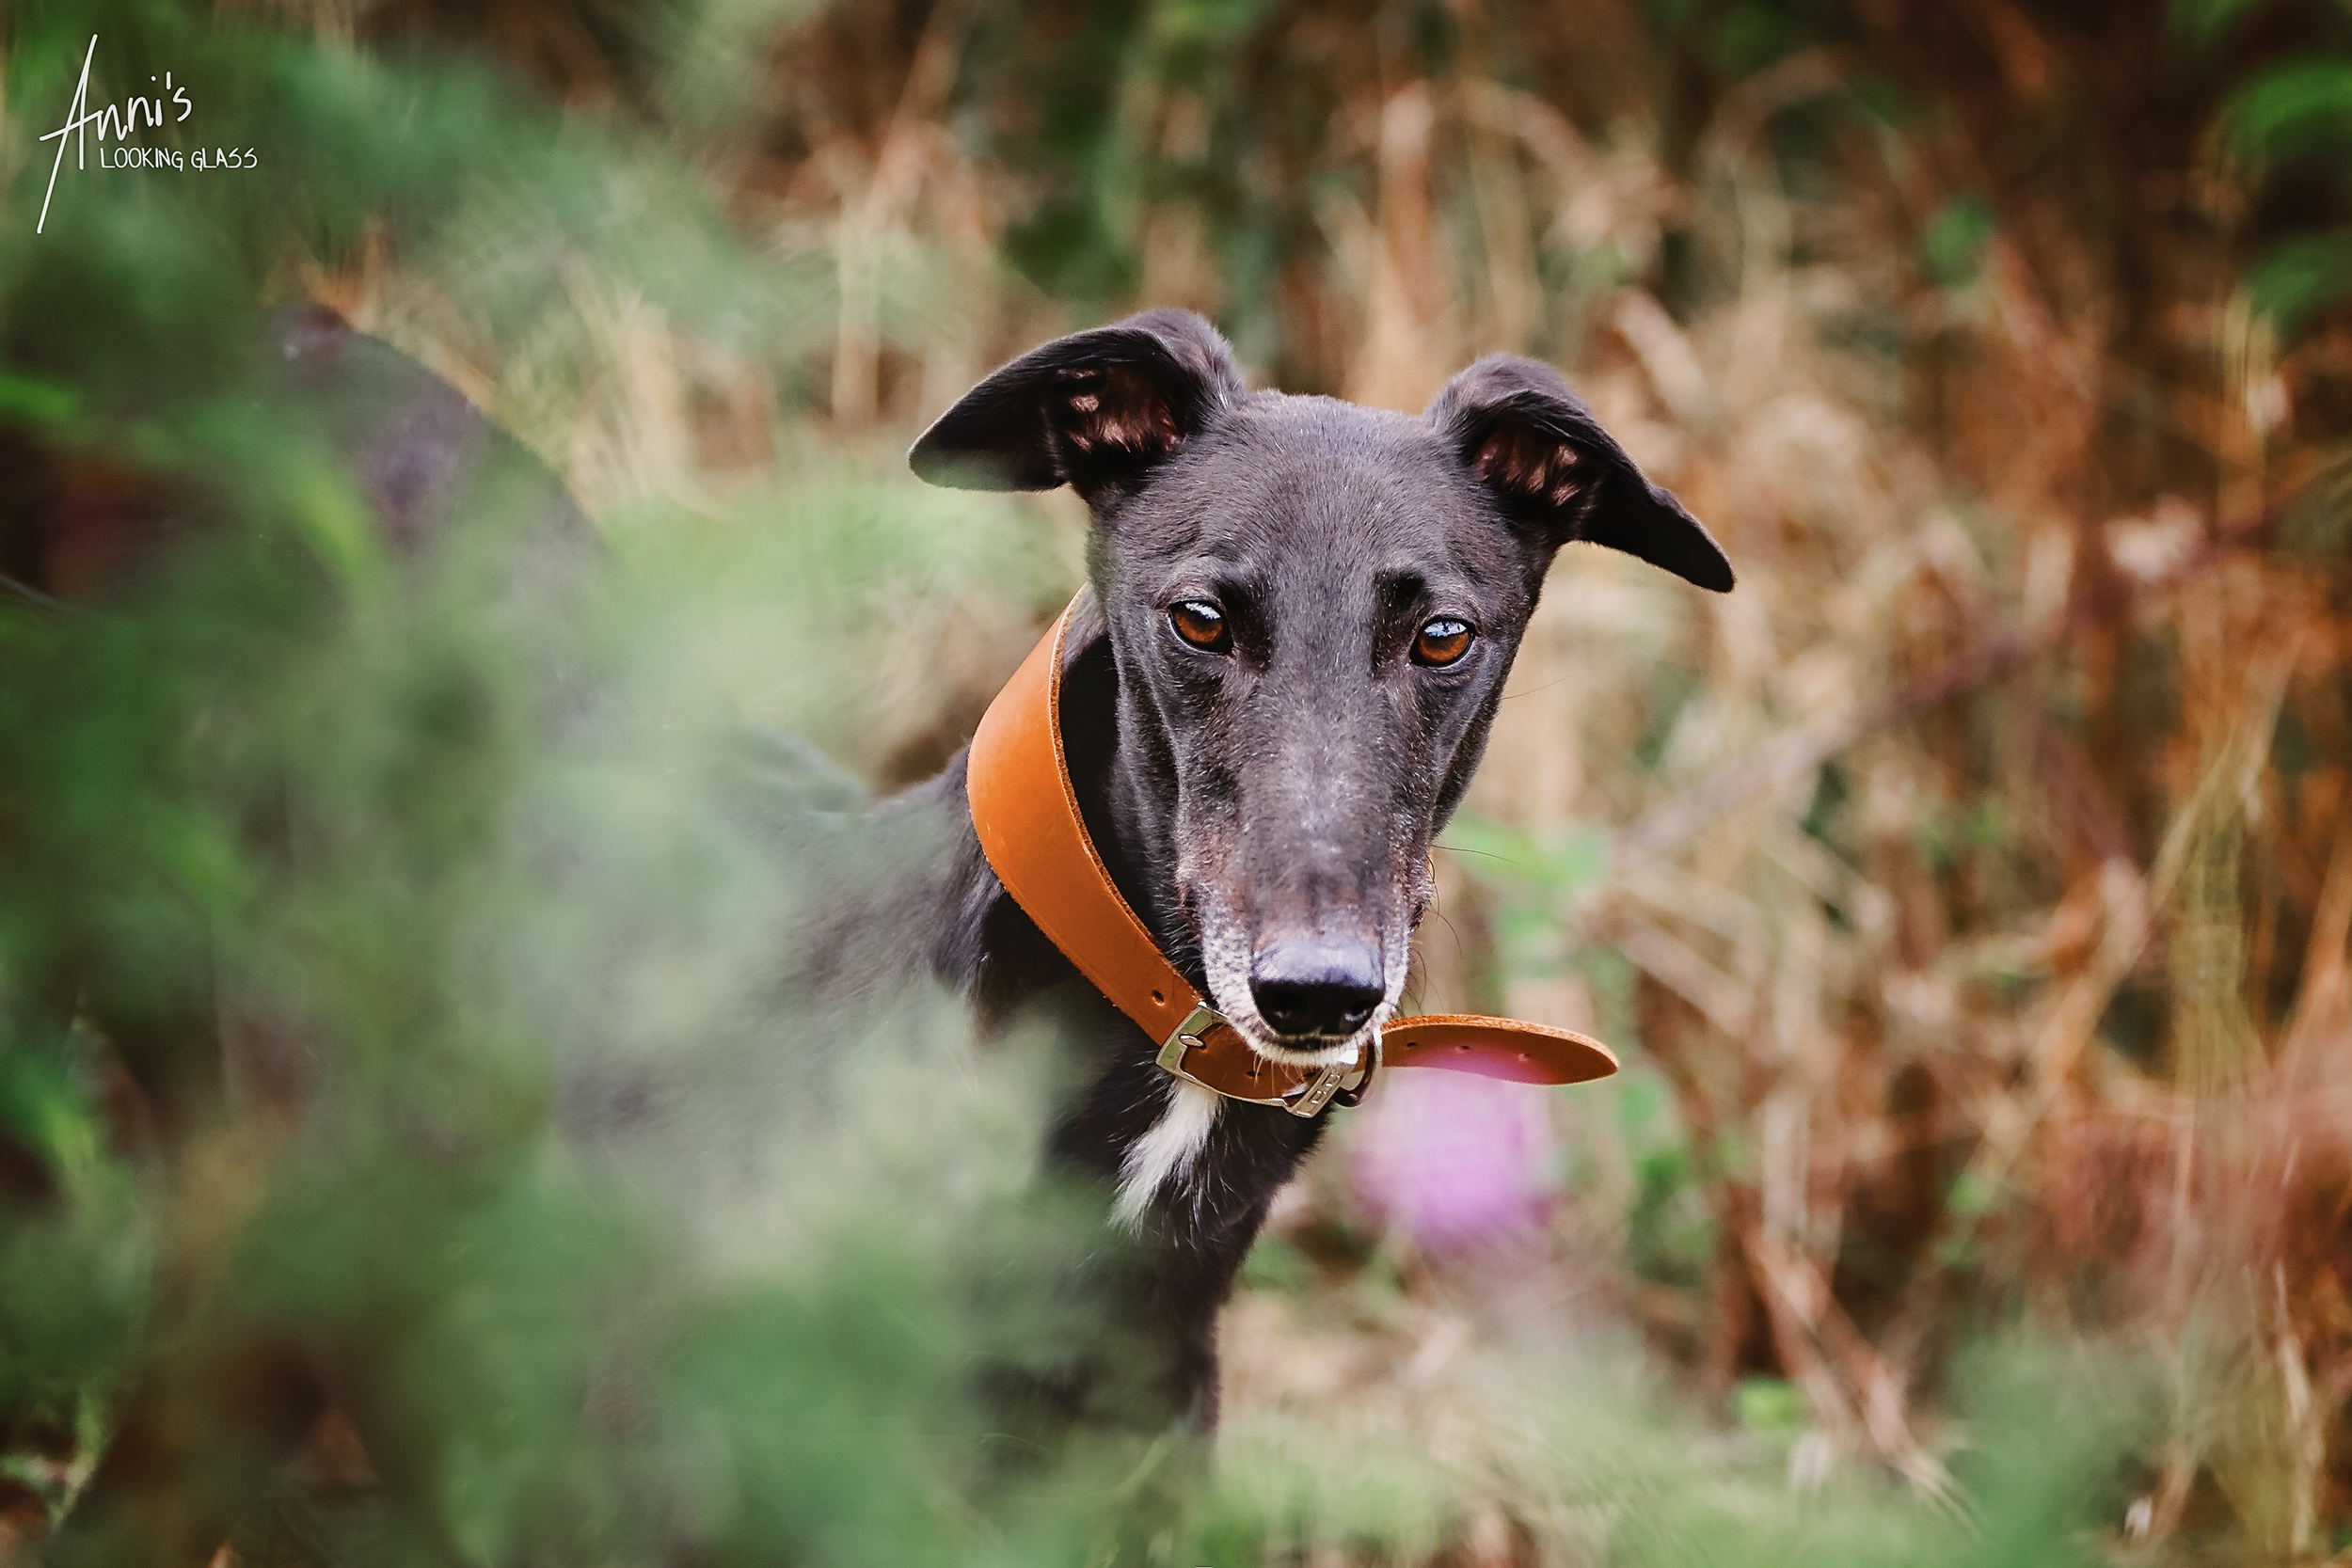 A black greyhound peeks out behind some bushes at the Dogs Trust Loughborough